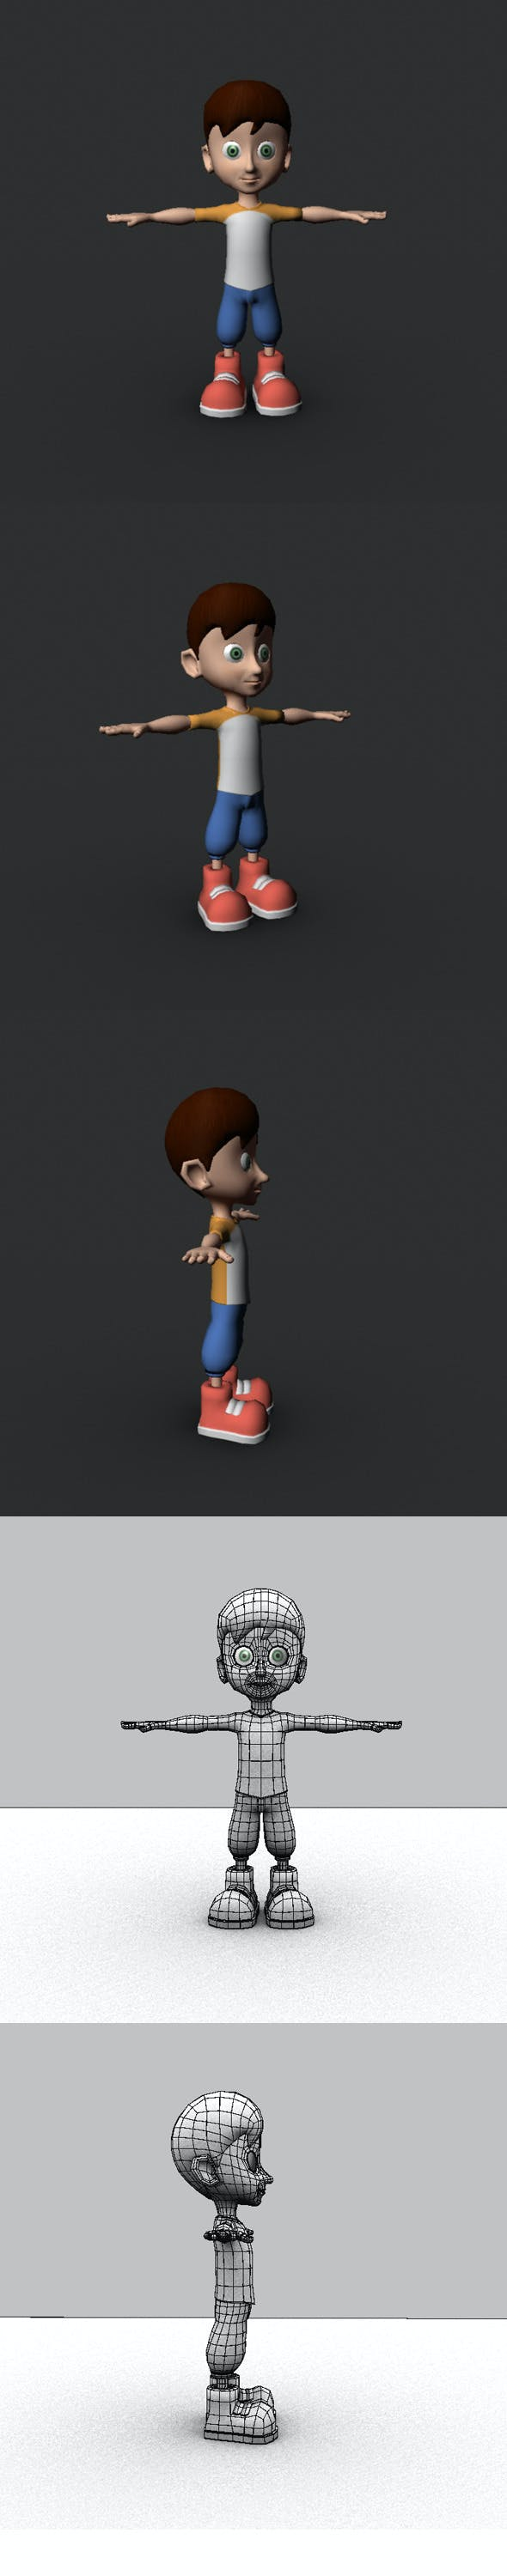 Low Poly Cartoon Character - 3DOcean Item for Sale